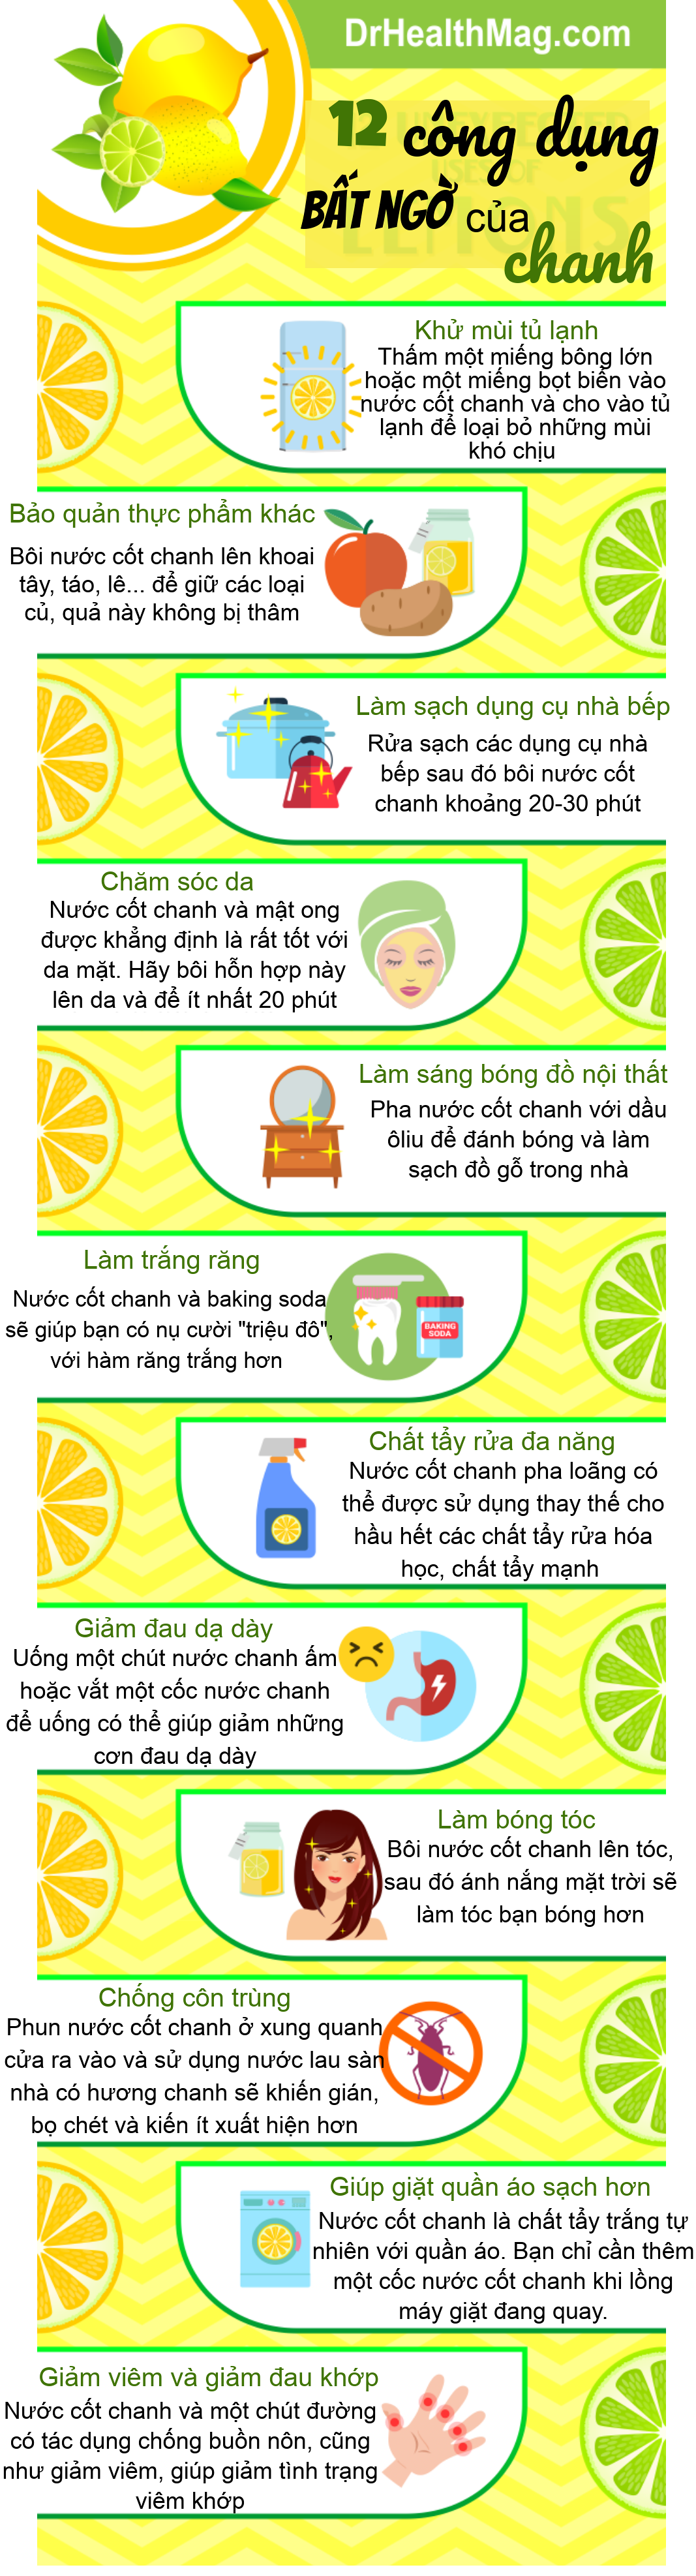 infographics 12 cong dung vo cung huu ich cua chanh